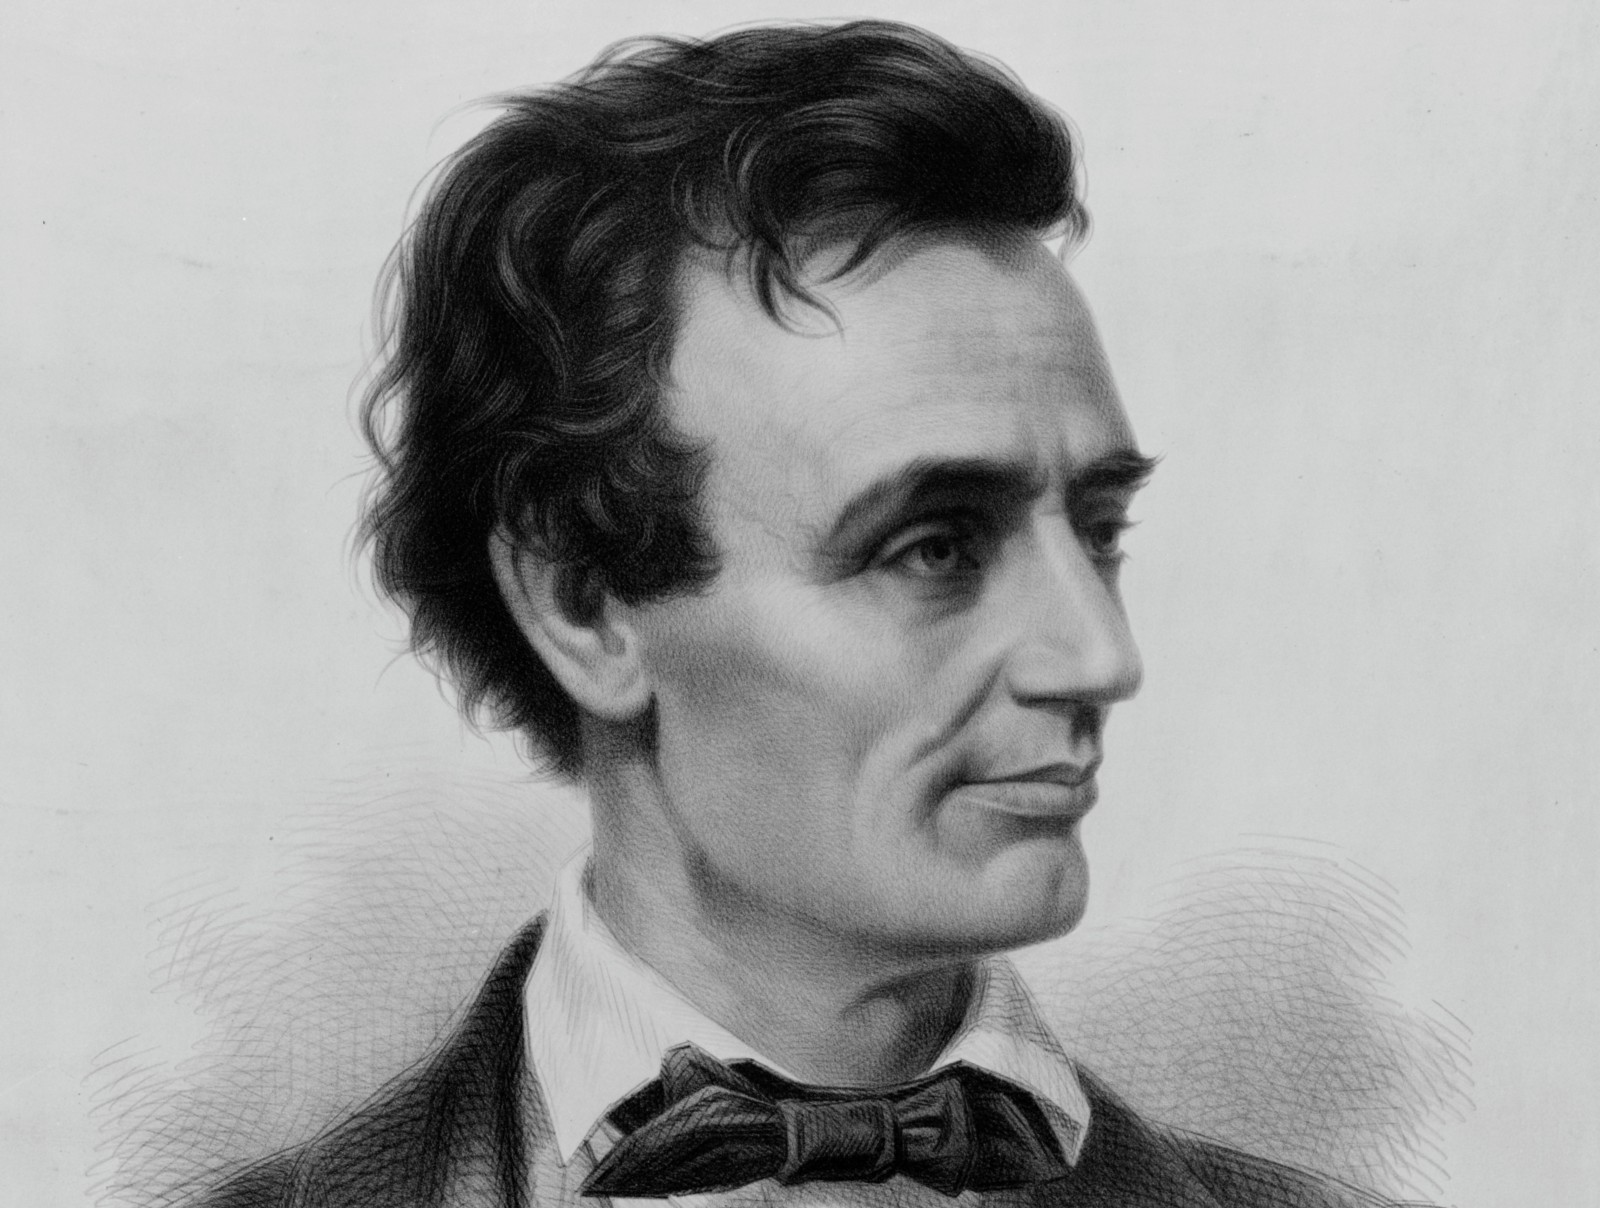 Lincoln, on mobs